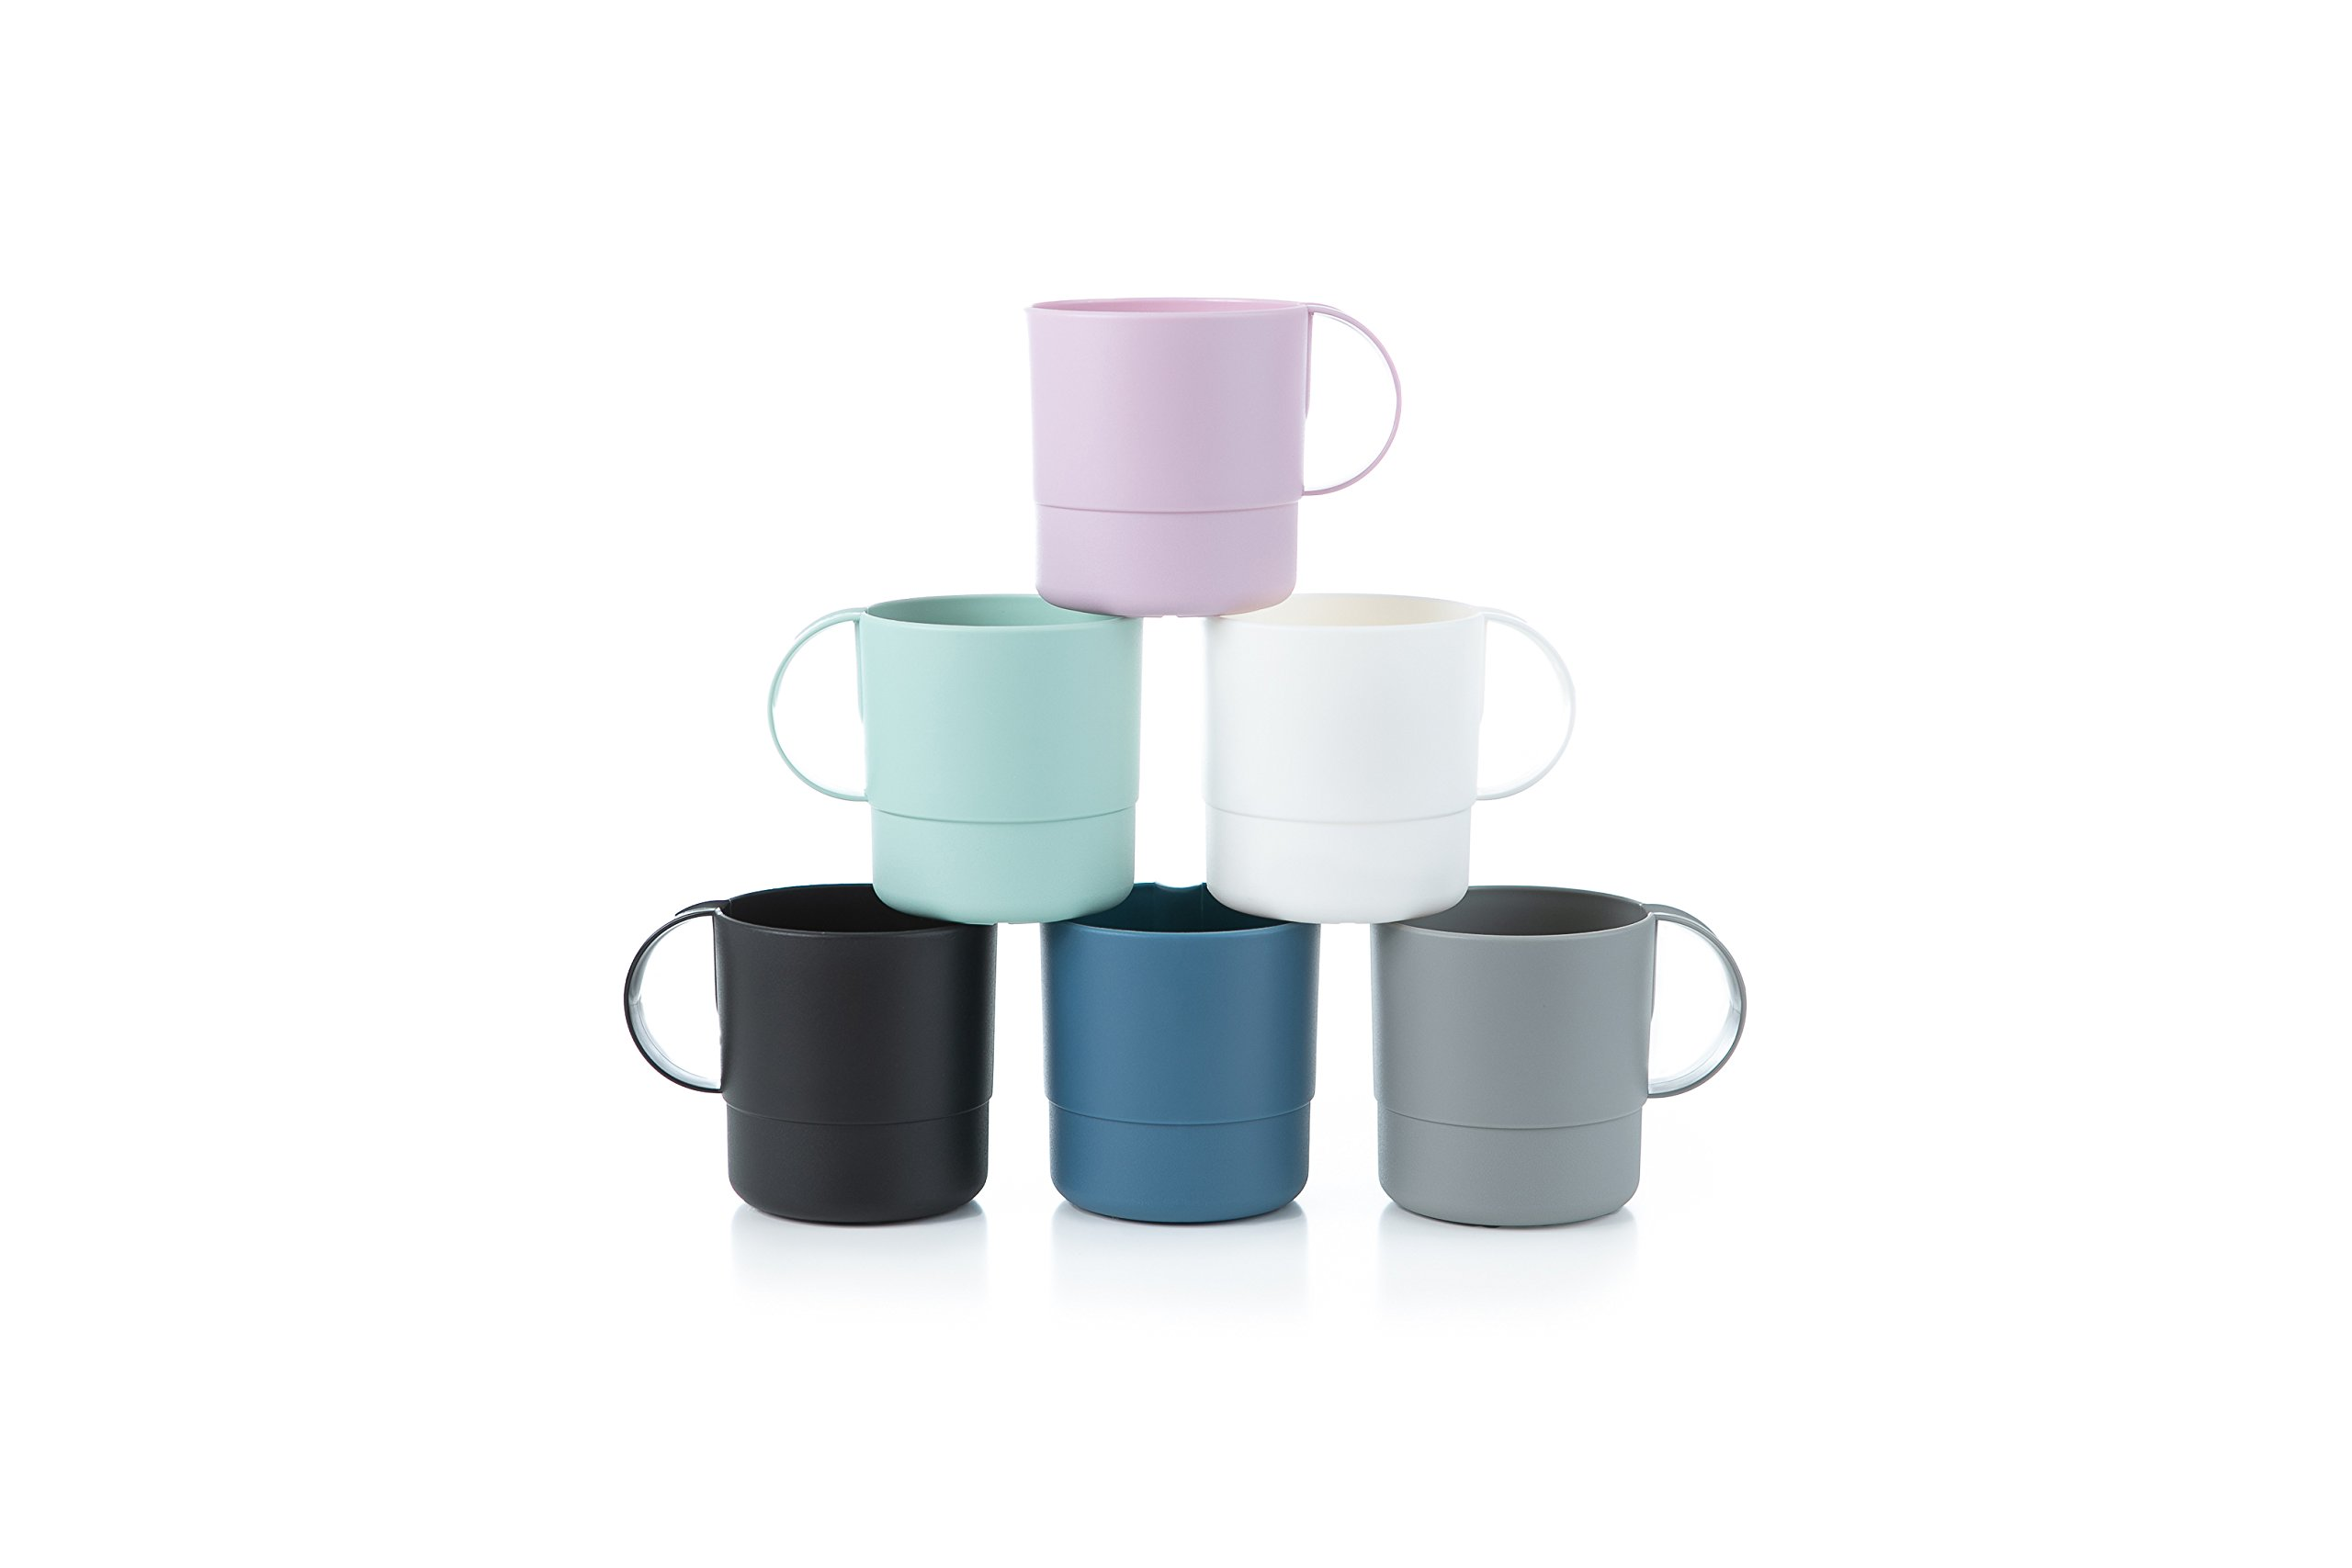 Amuse- Eco Friendly Sturdy Unbreakable & Stackable Mugs for Water, Coffee, Milk, Juice, Tea- Set of 6-11 oz (Assorted Colors)